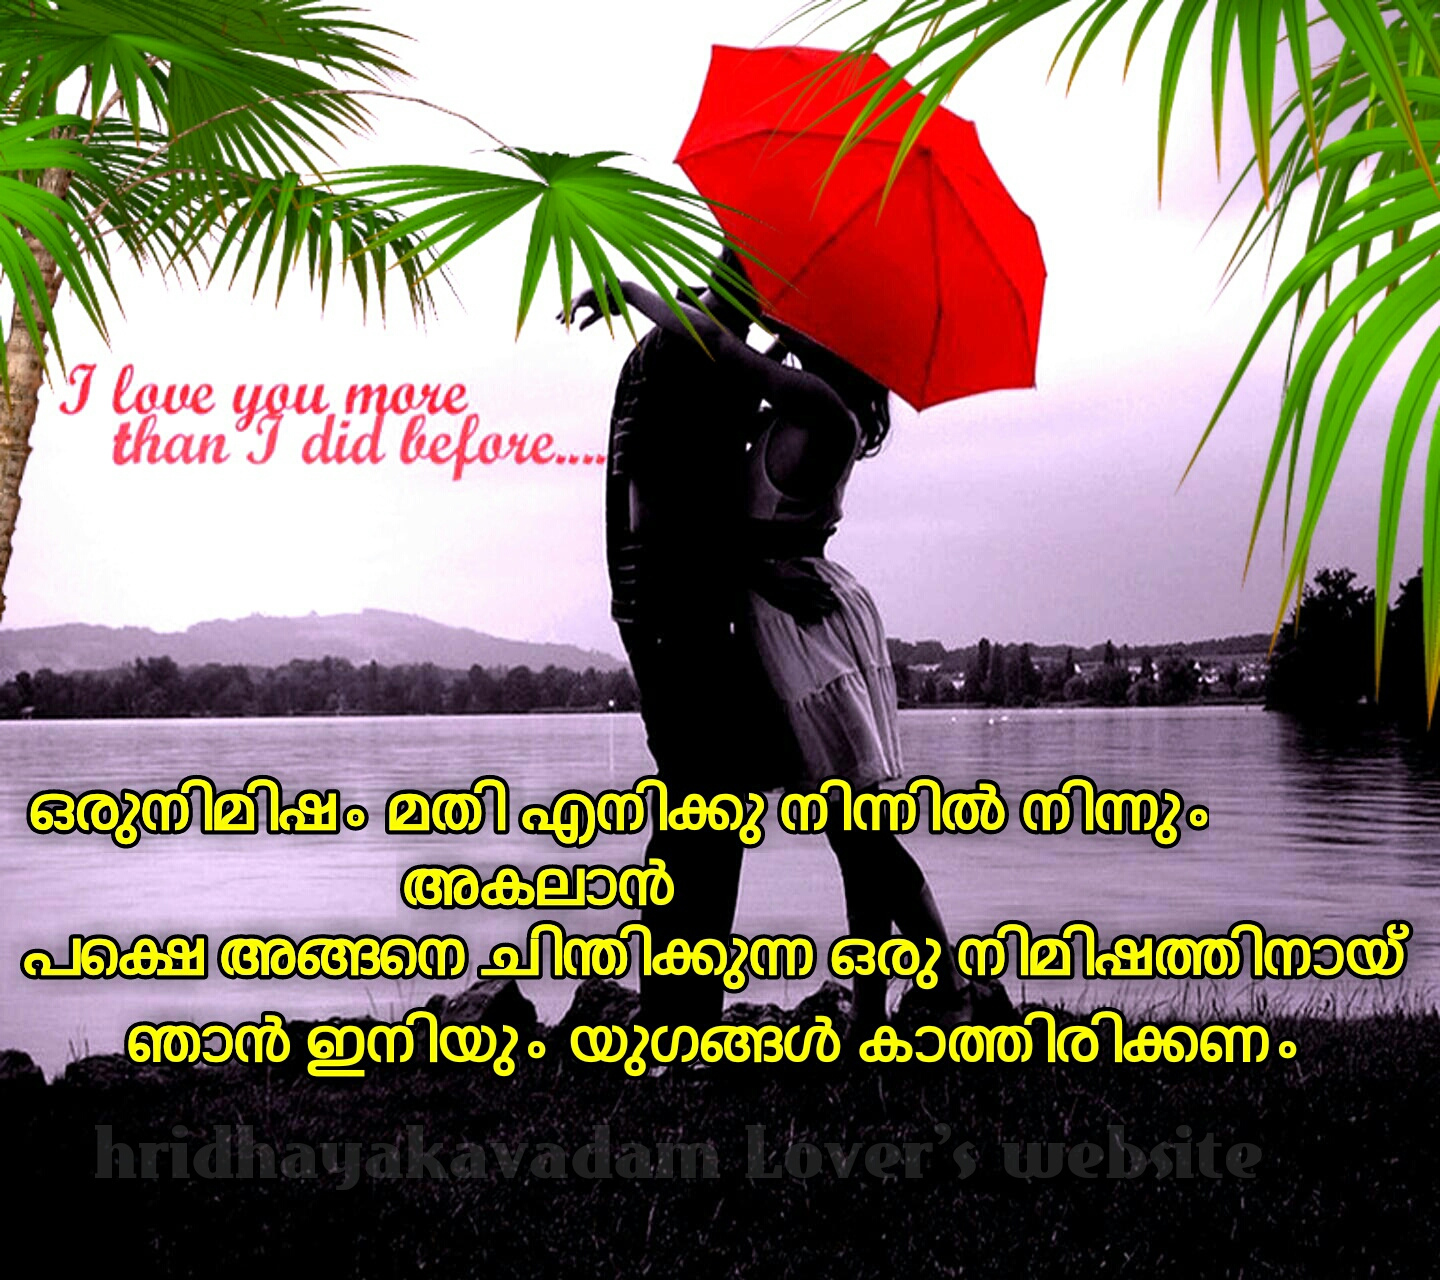 Malayalam Love Quotes Malayalam Love Quotes  Hridhayakavadam